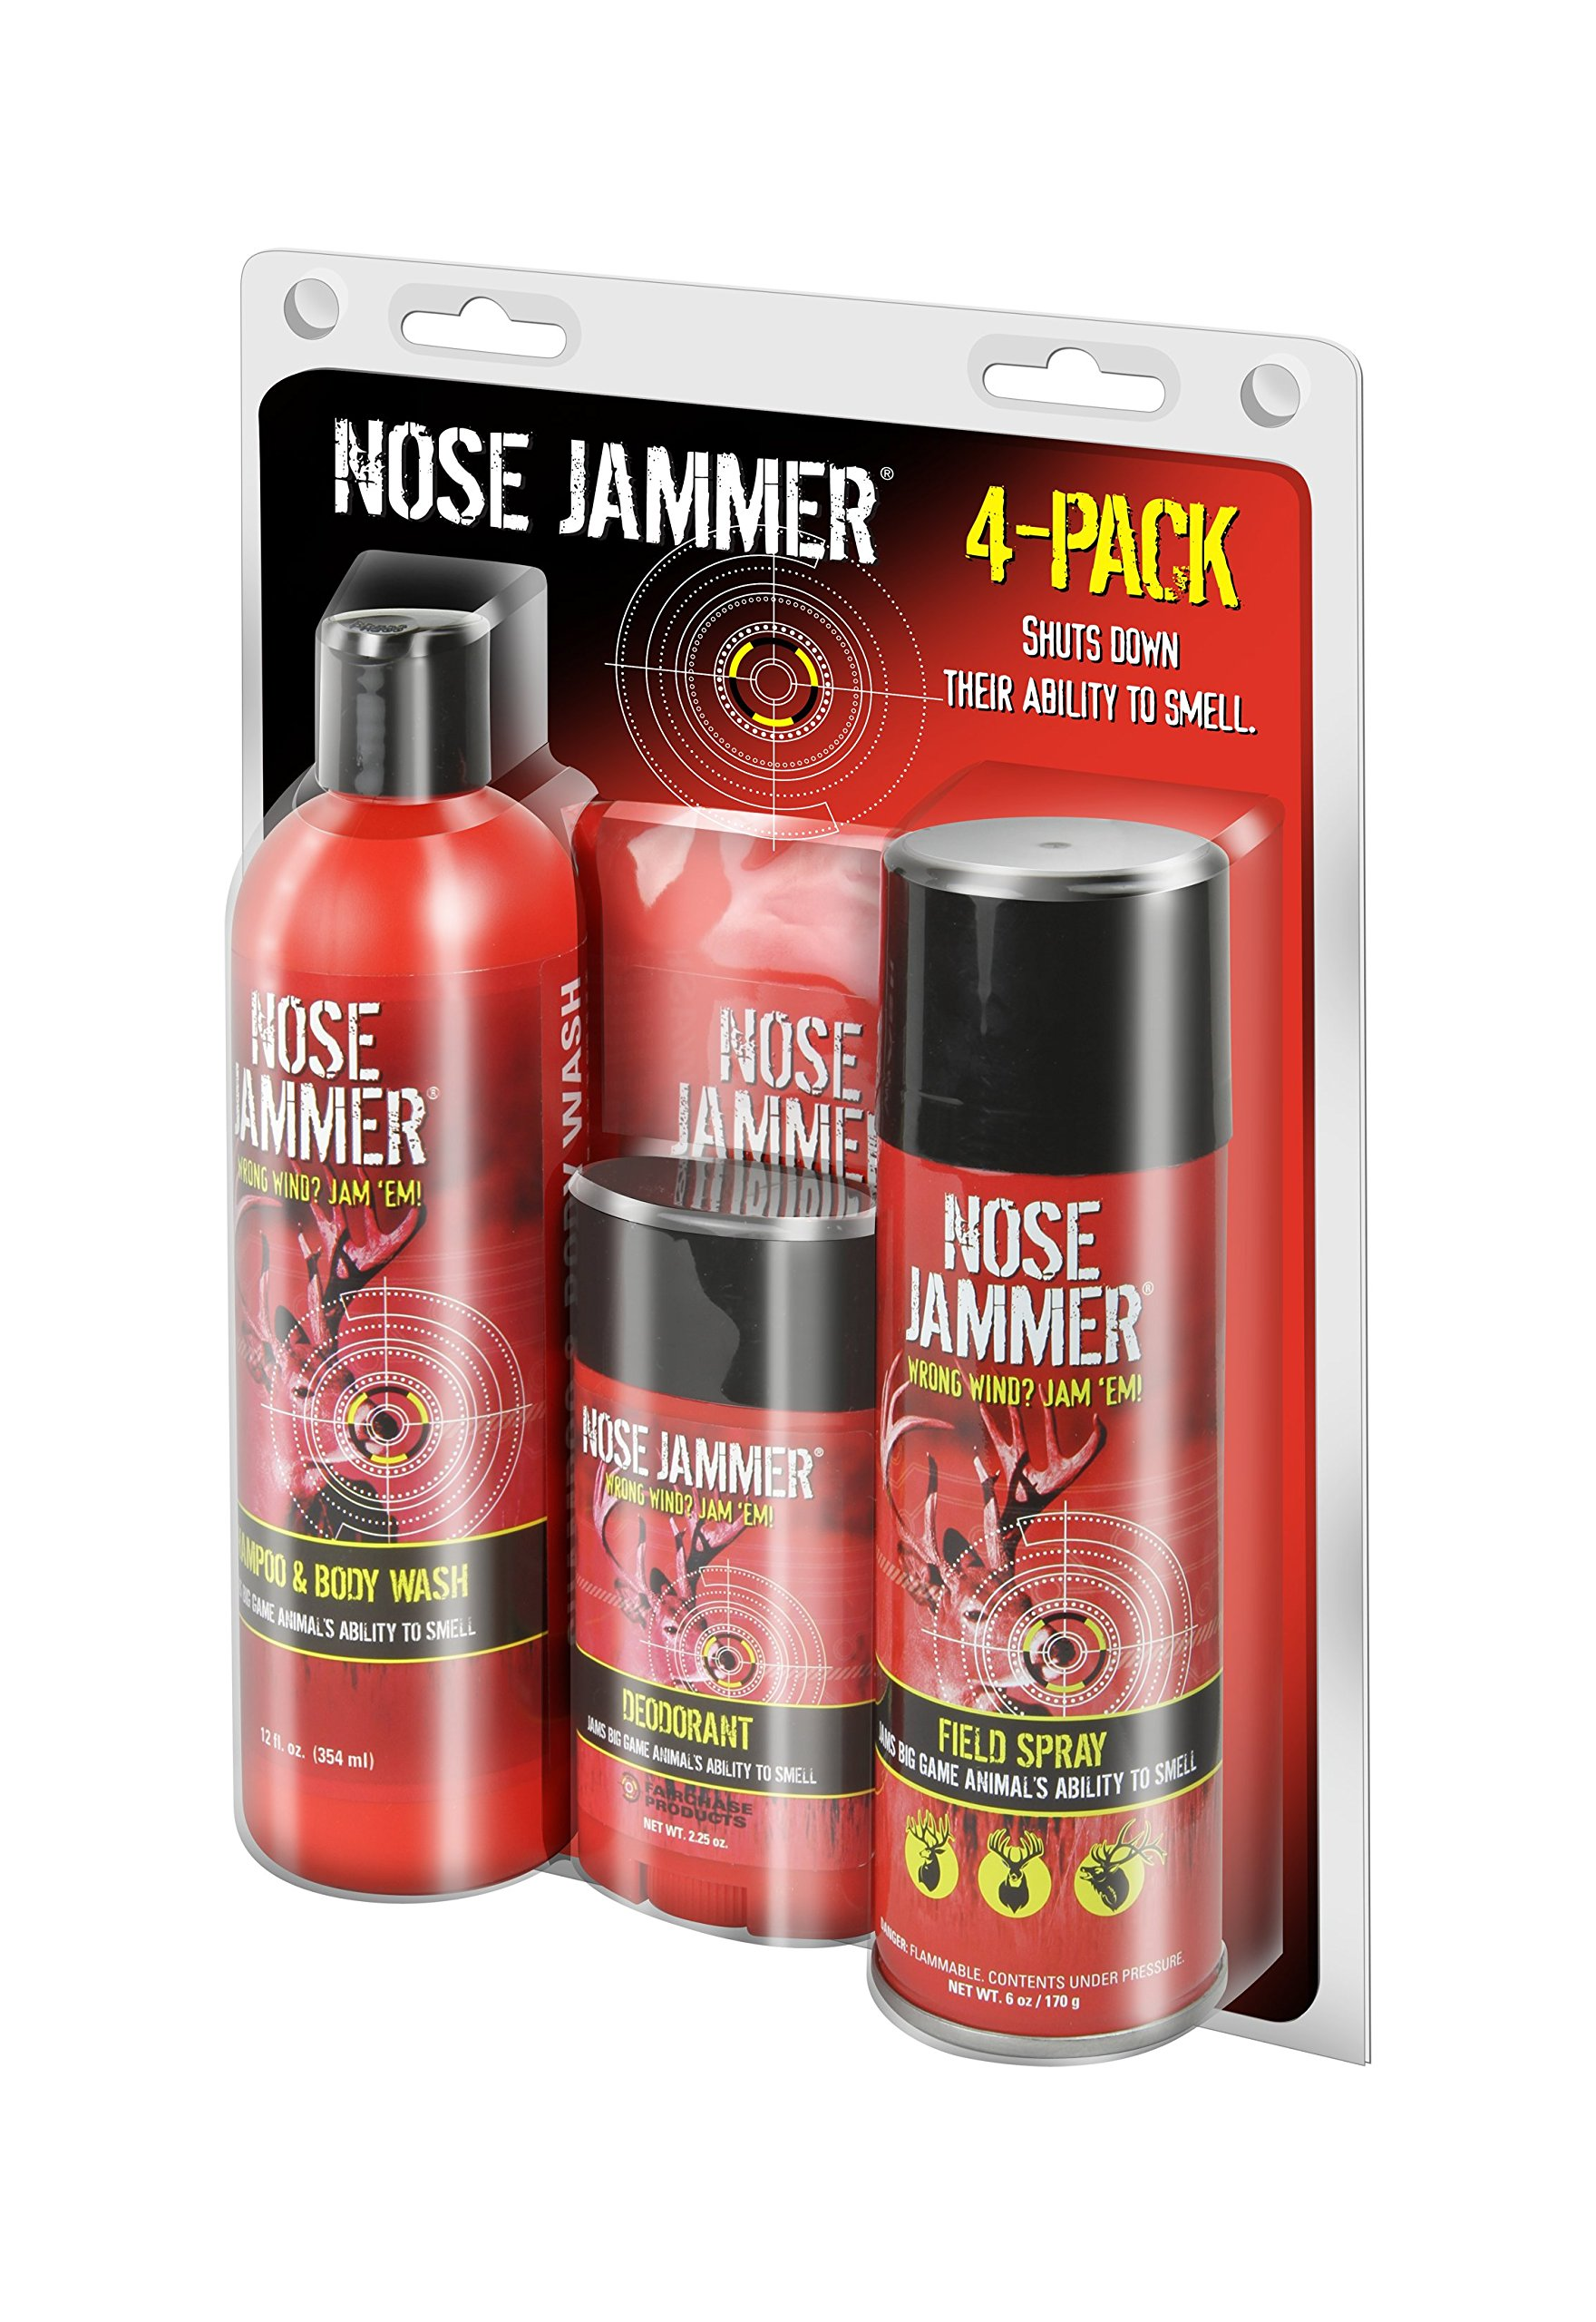 Nose Jammer Natural Scent-Masking Best Value Combination 4-Pack (Field Spray, Deodorant, Wipes, Shampoo/Body Wash)